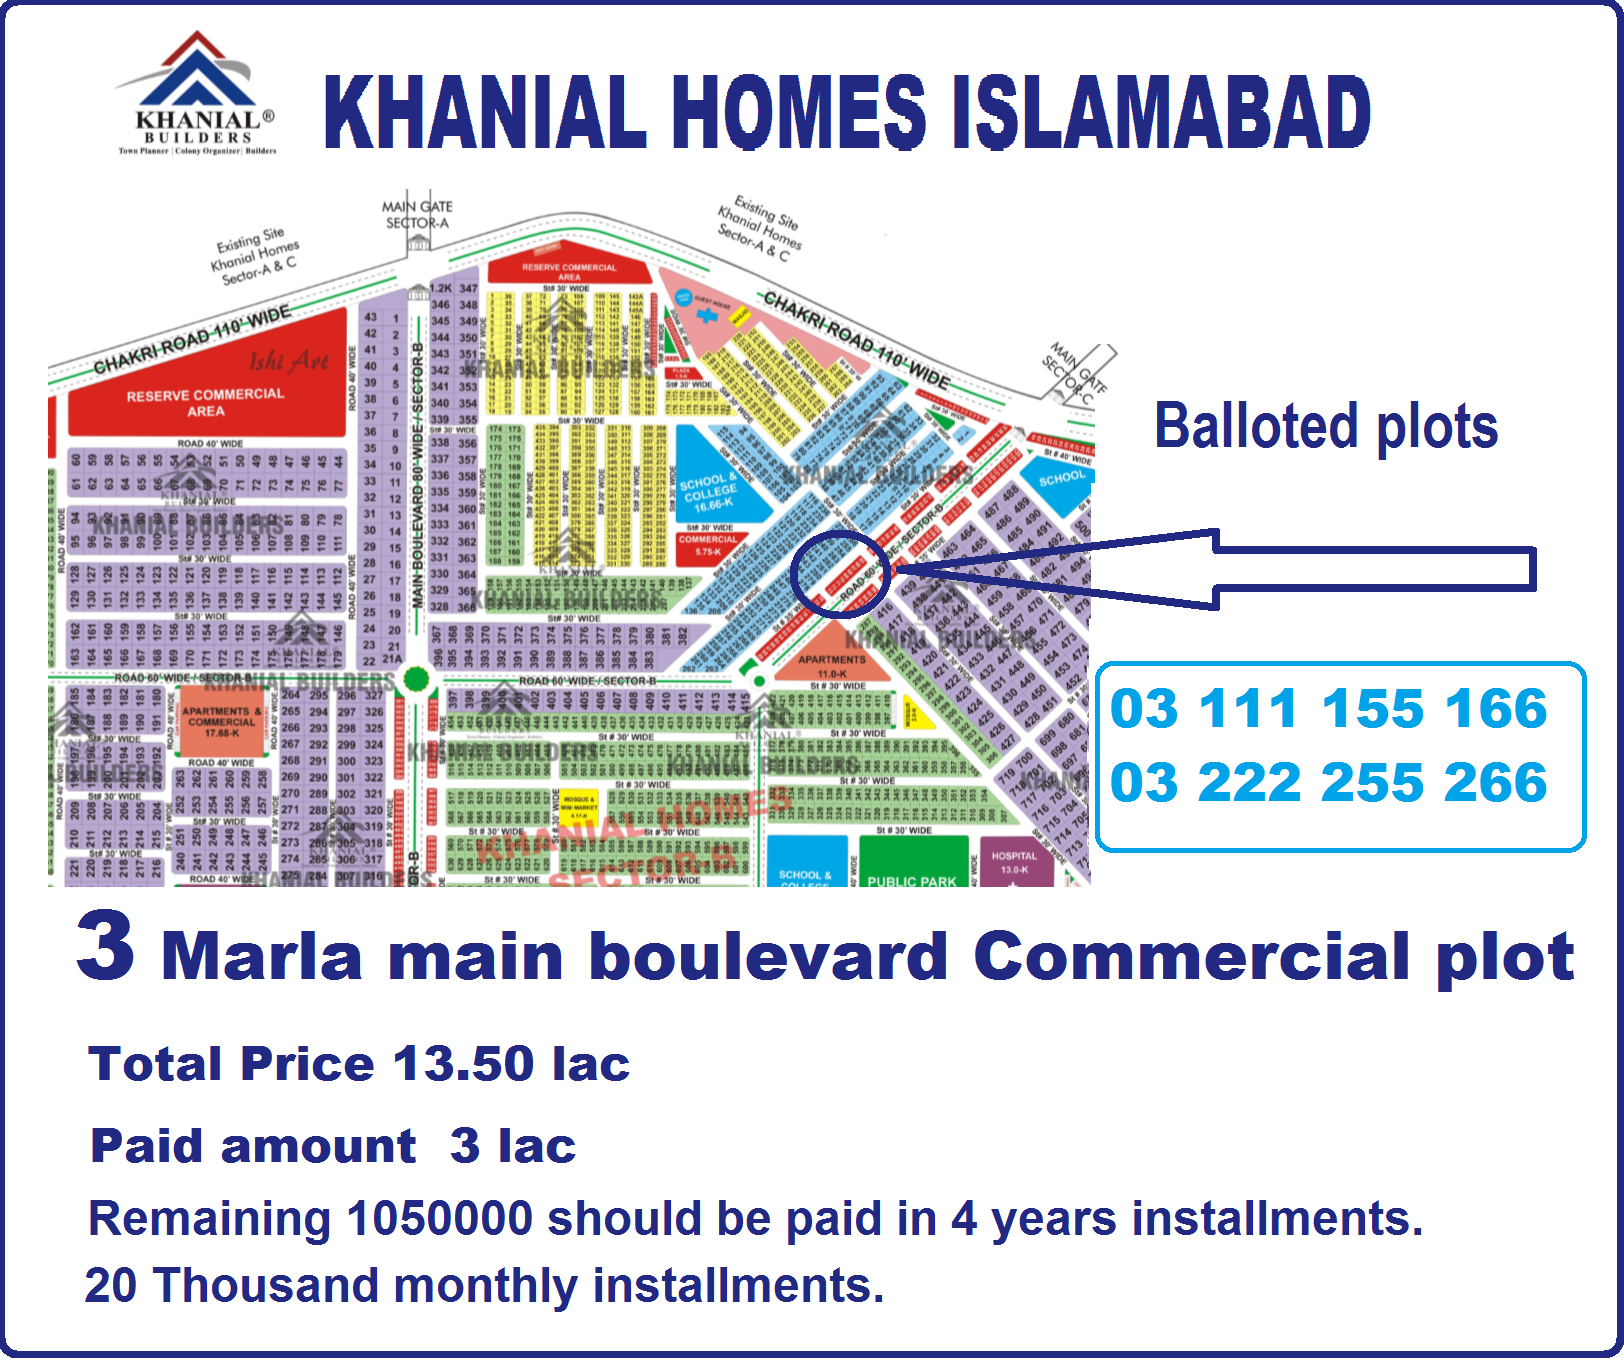 Khanial Homes 3 Marla main boulevard commercial plot for sale